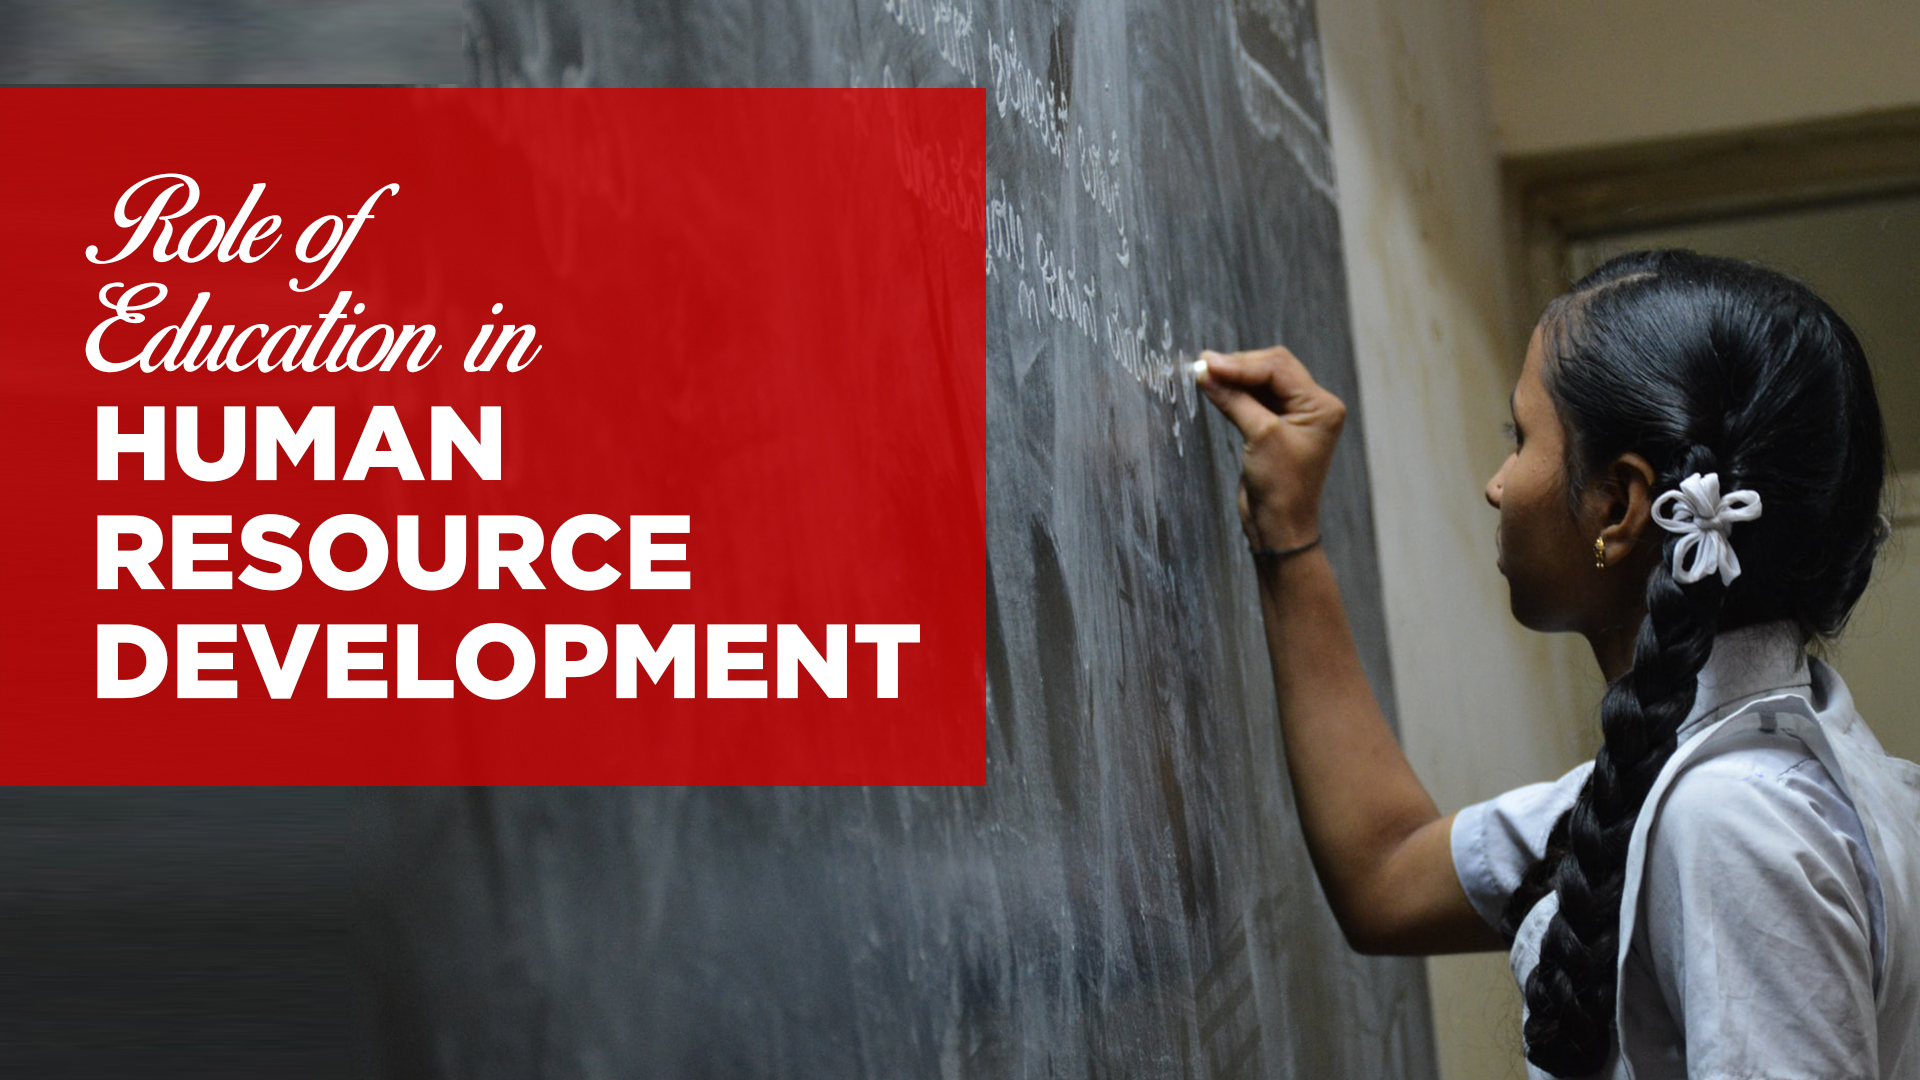 Role of Education in Human Resource Development